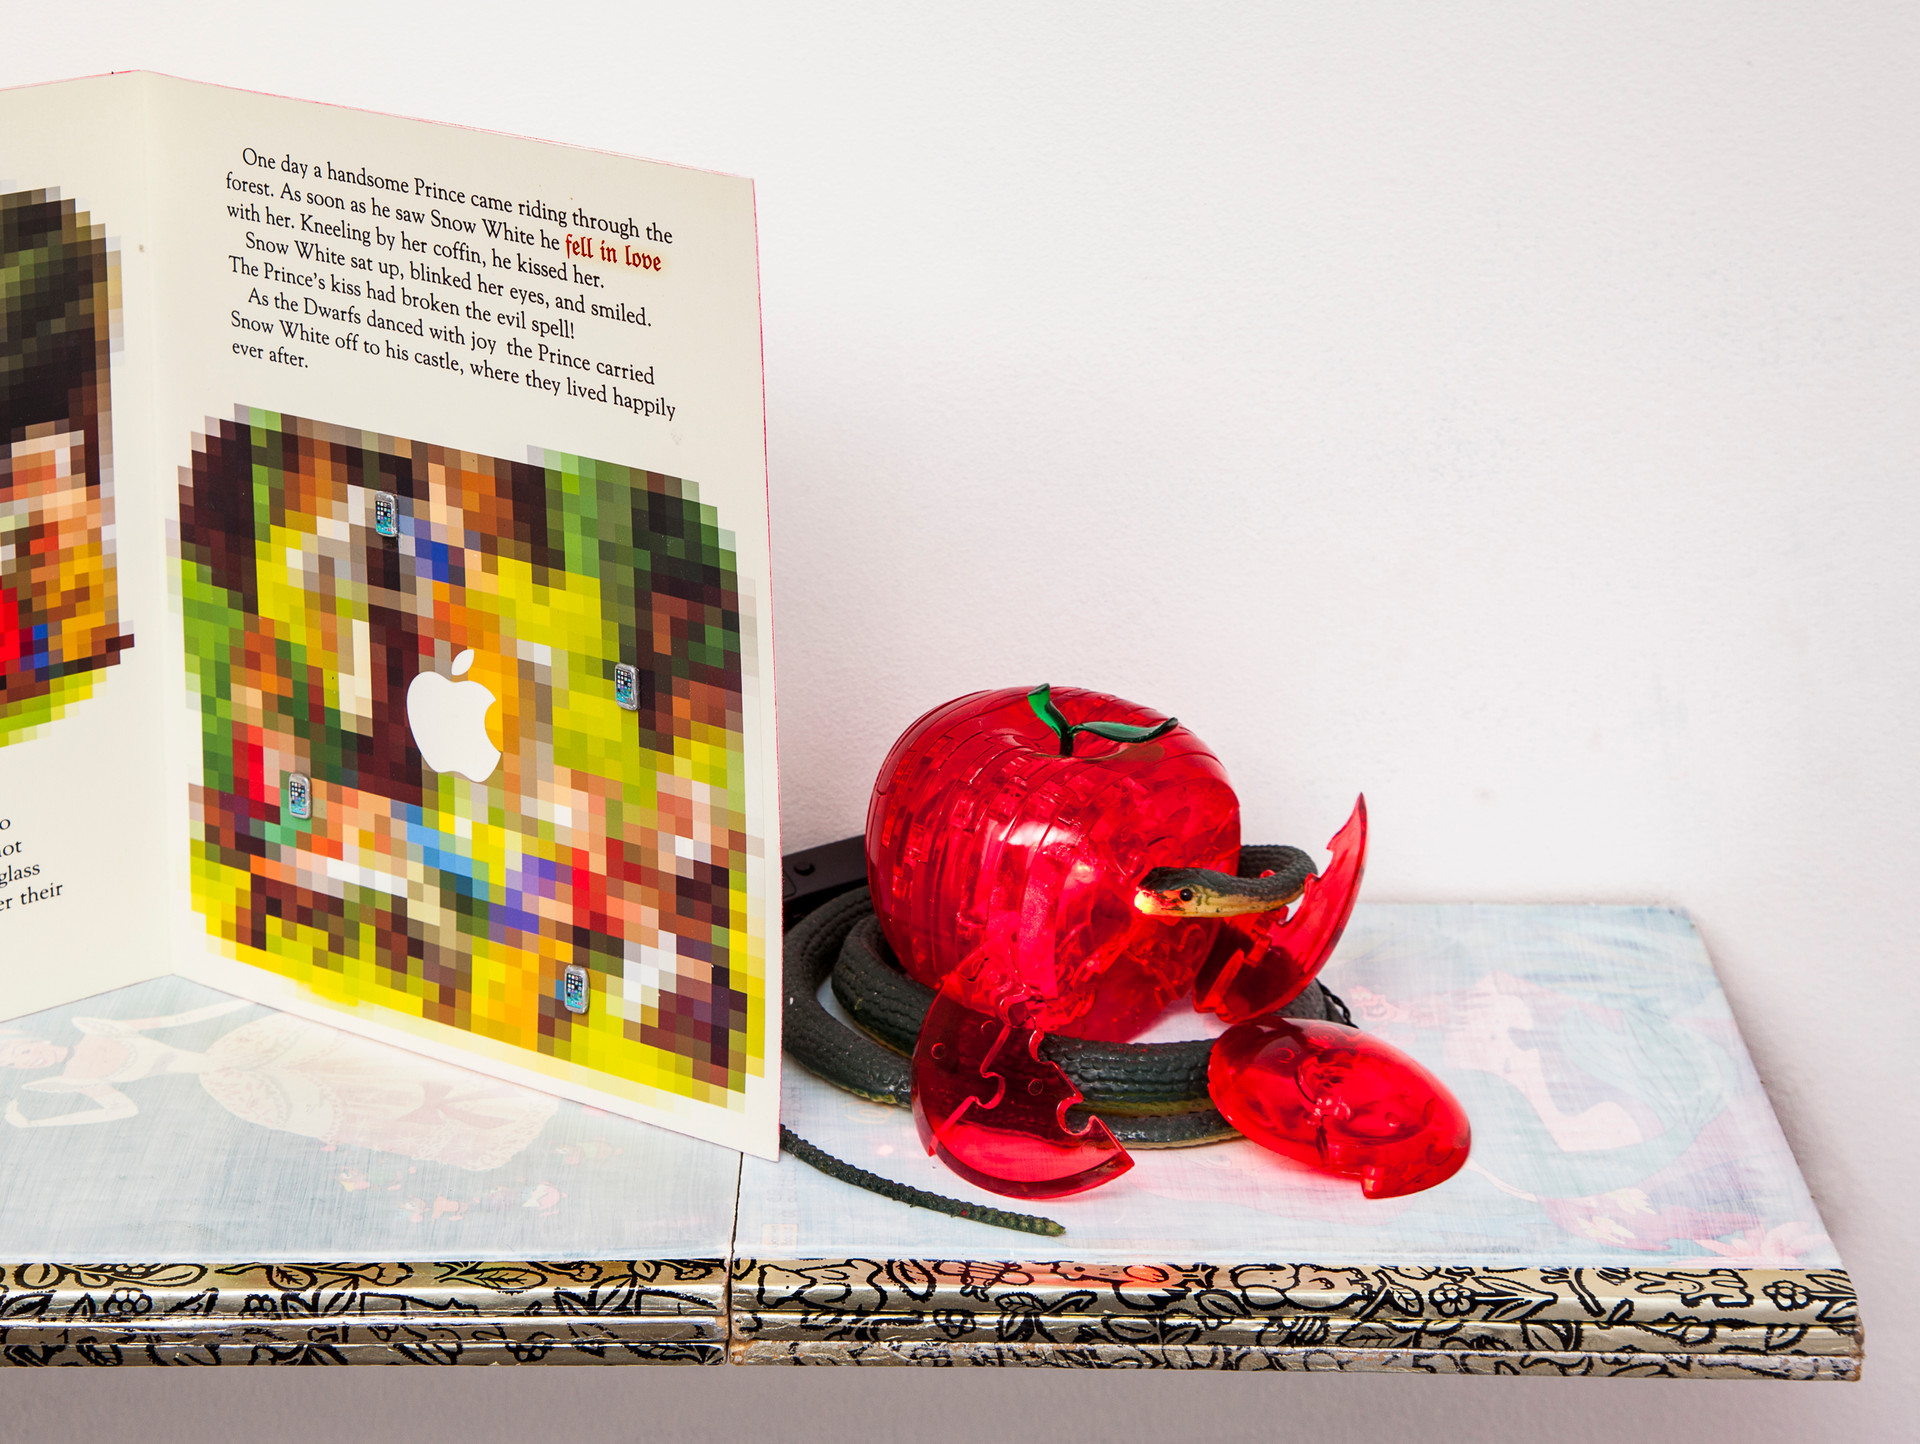 Last page of book totally pixelated except for Apple computer logo that dominates center. To right, red plastic apple is in process of deconstructing. Rubber snake with LED-lit mouth surrounds apple.